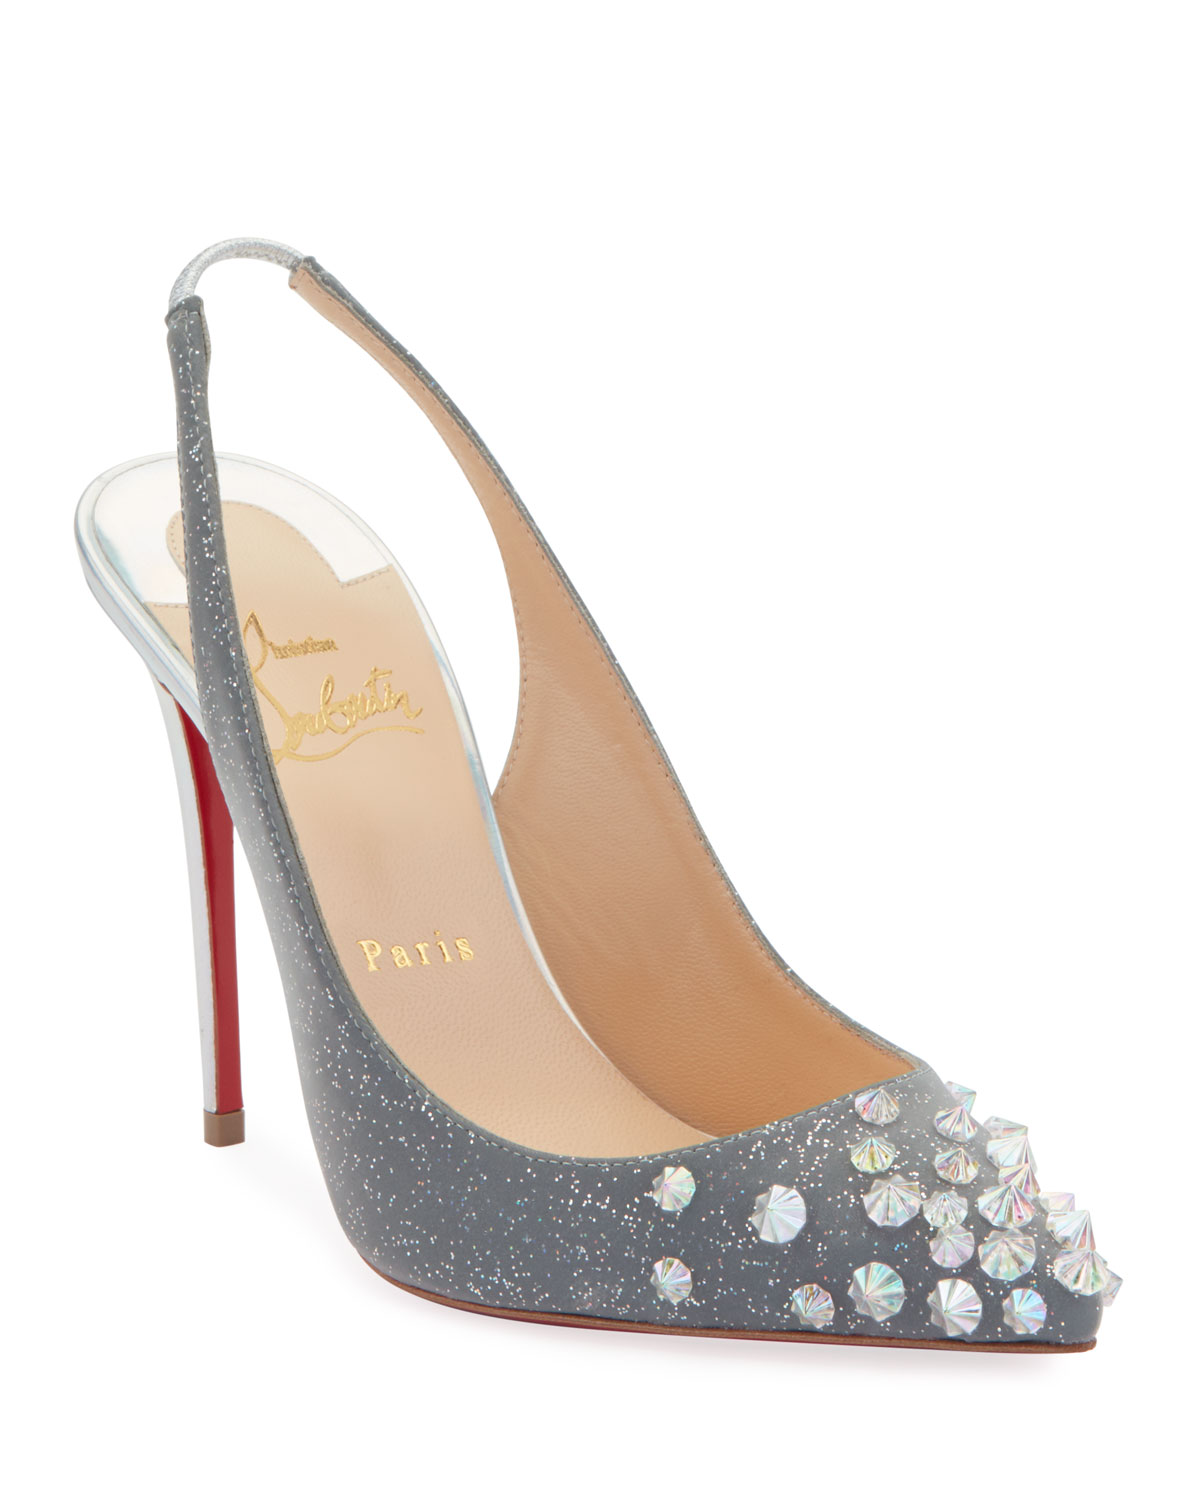 d26bad55a06 Christian LouboutinDrama Sling 100mm Spike Specchio Laser Red Sole Pumps